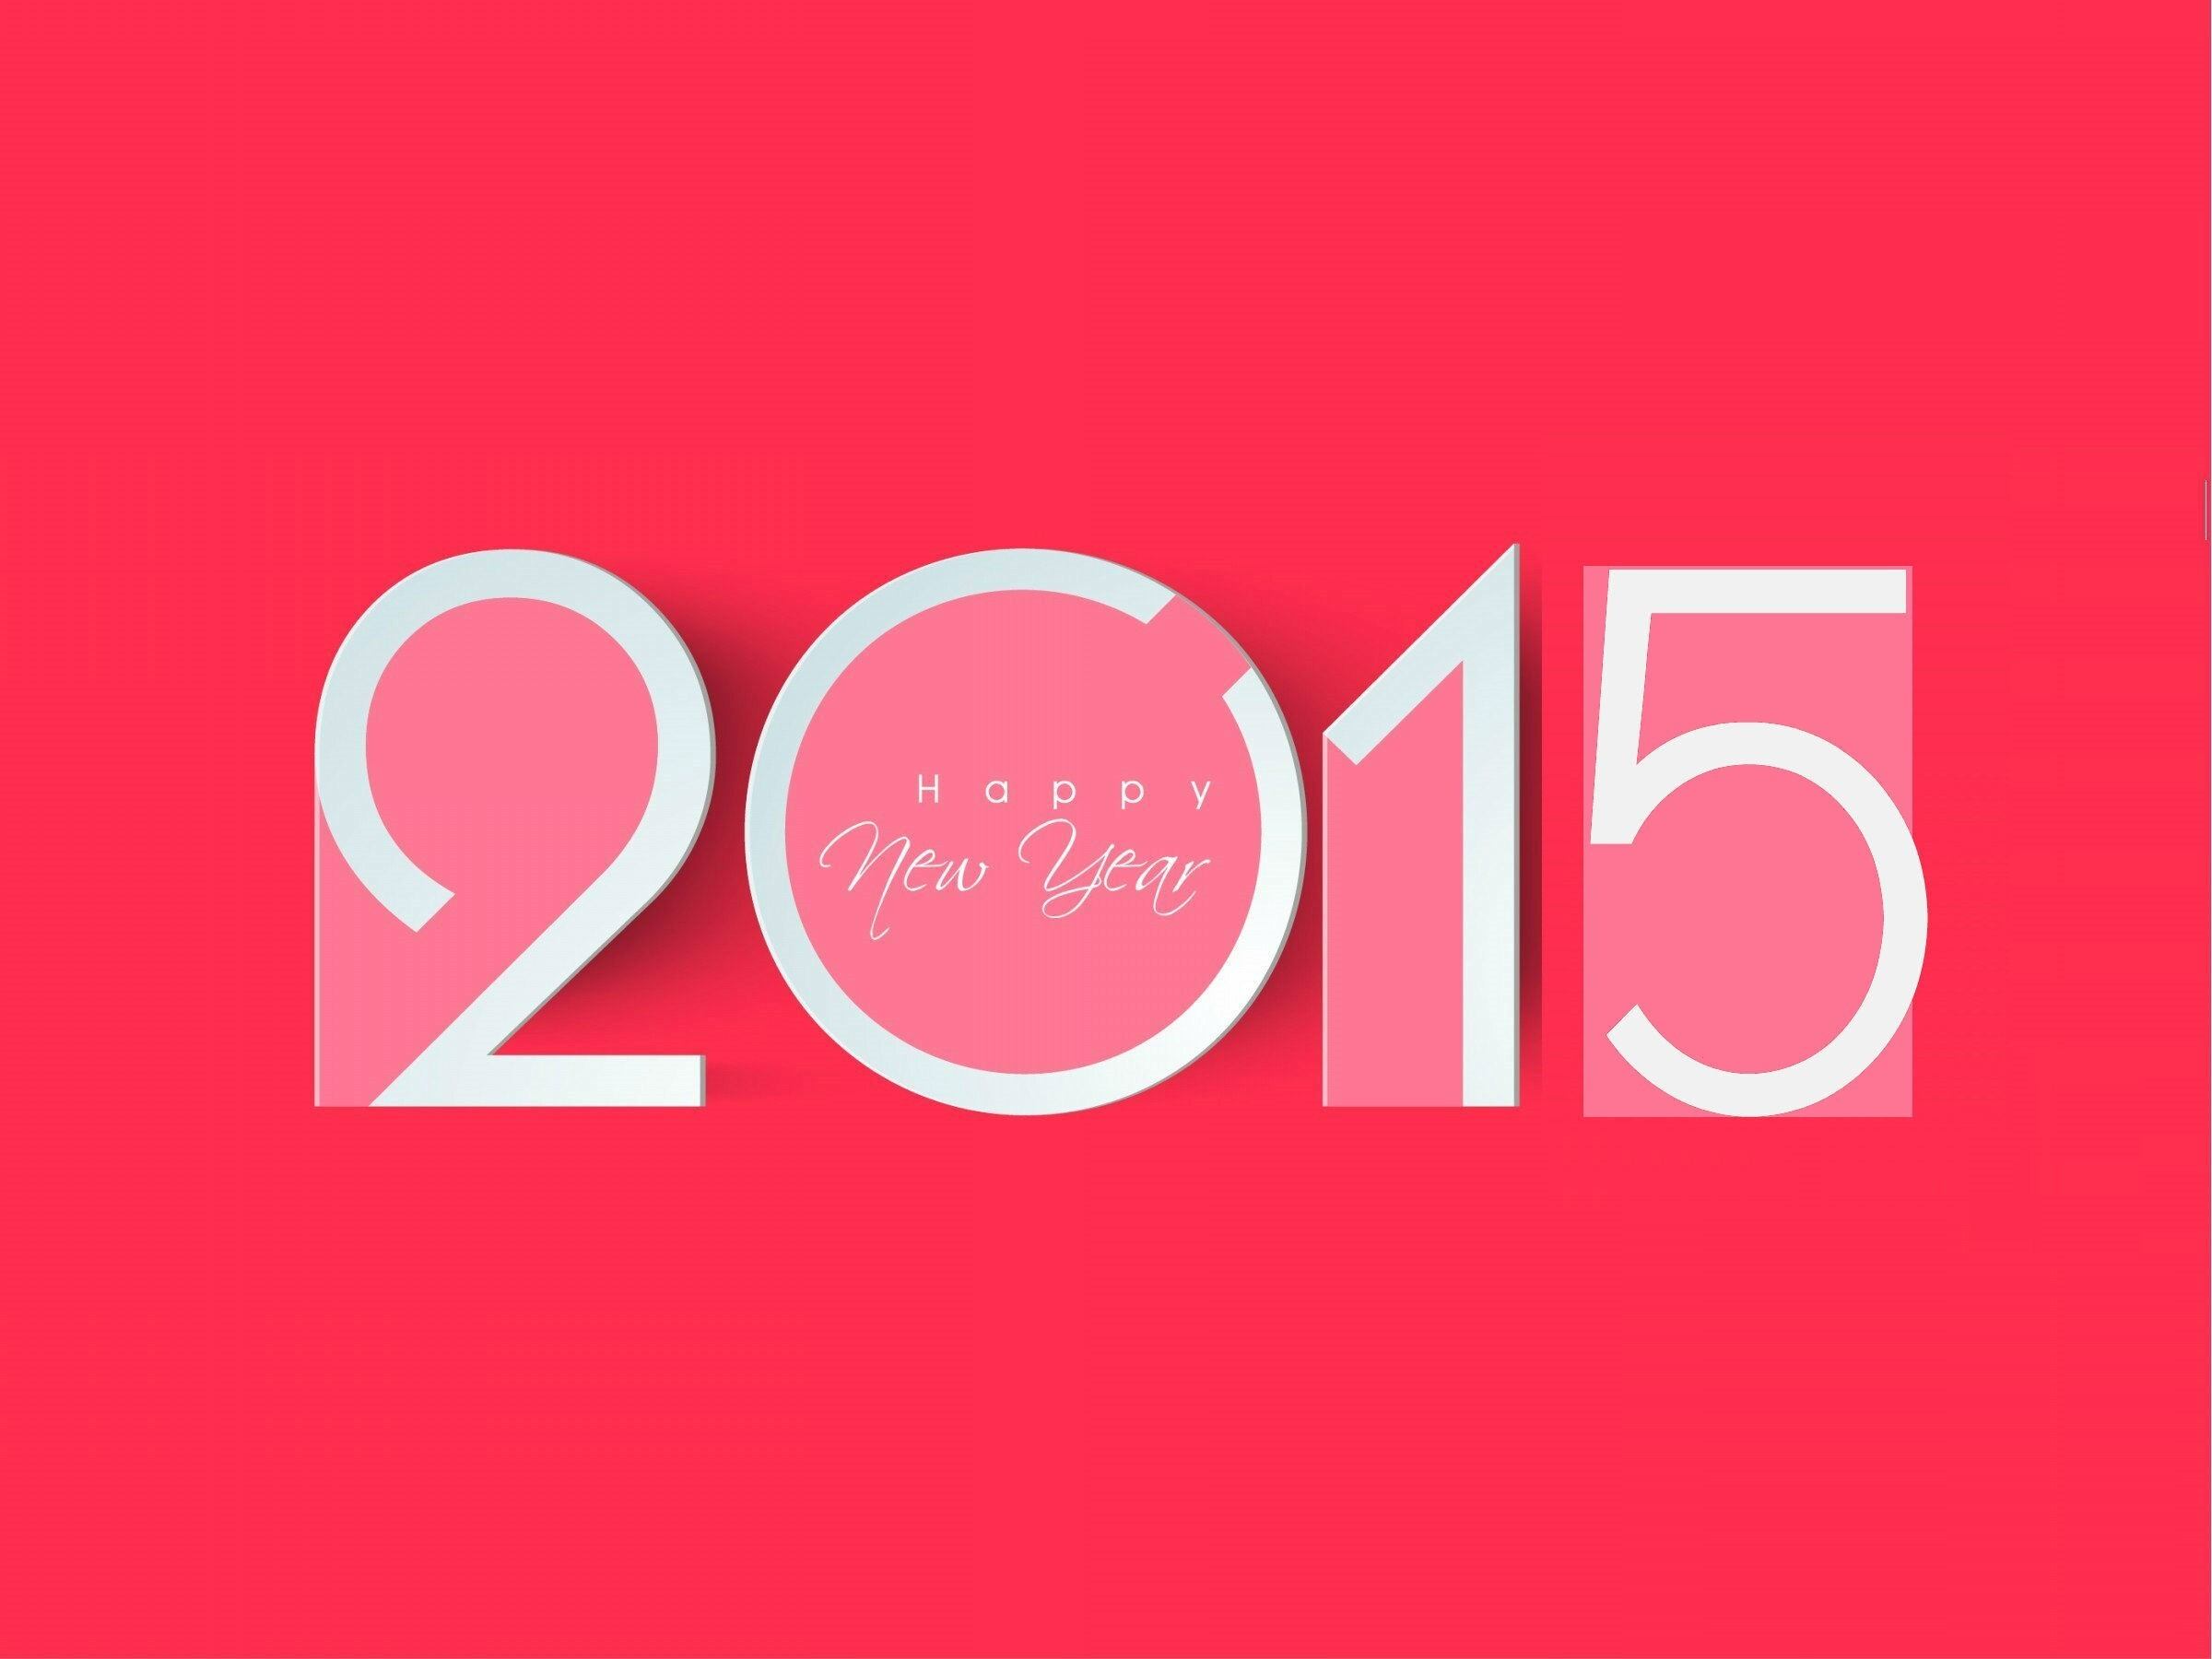 popular happy new year 2015 in pink color background hd wallpaper hd wallpapers